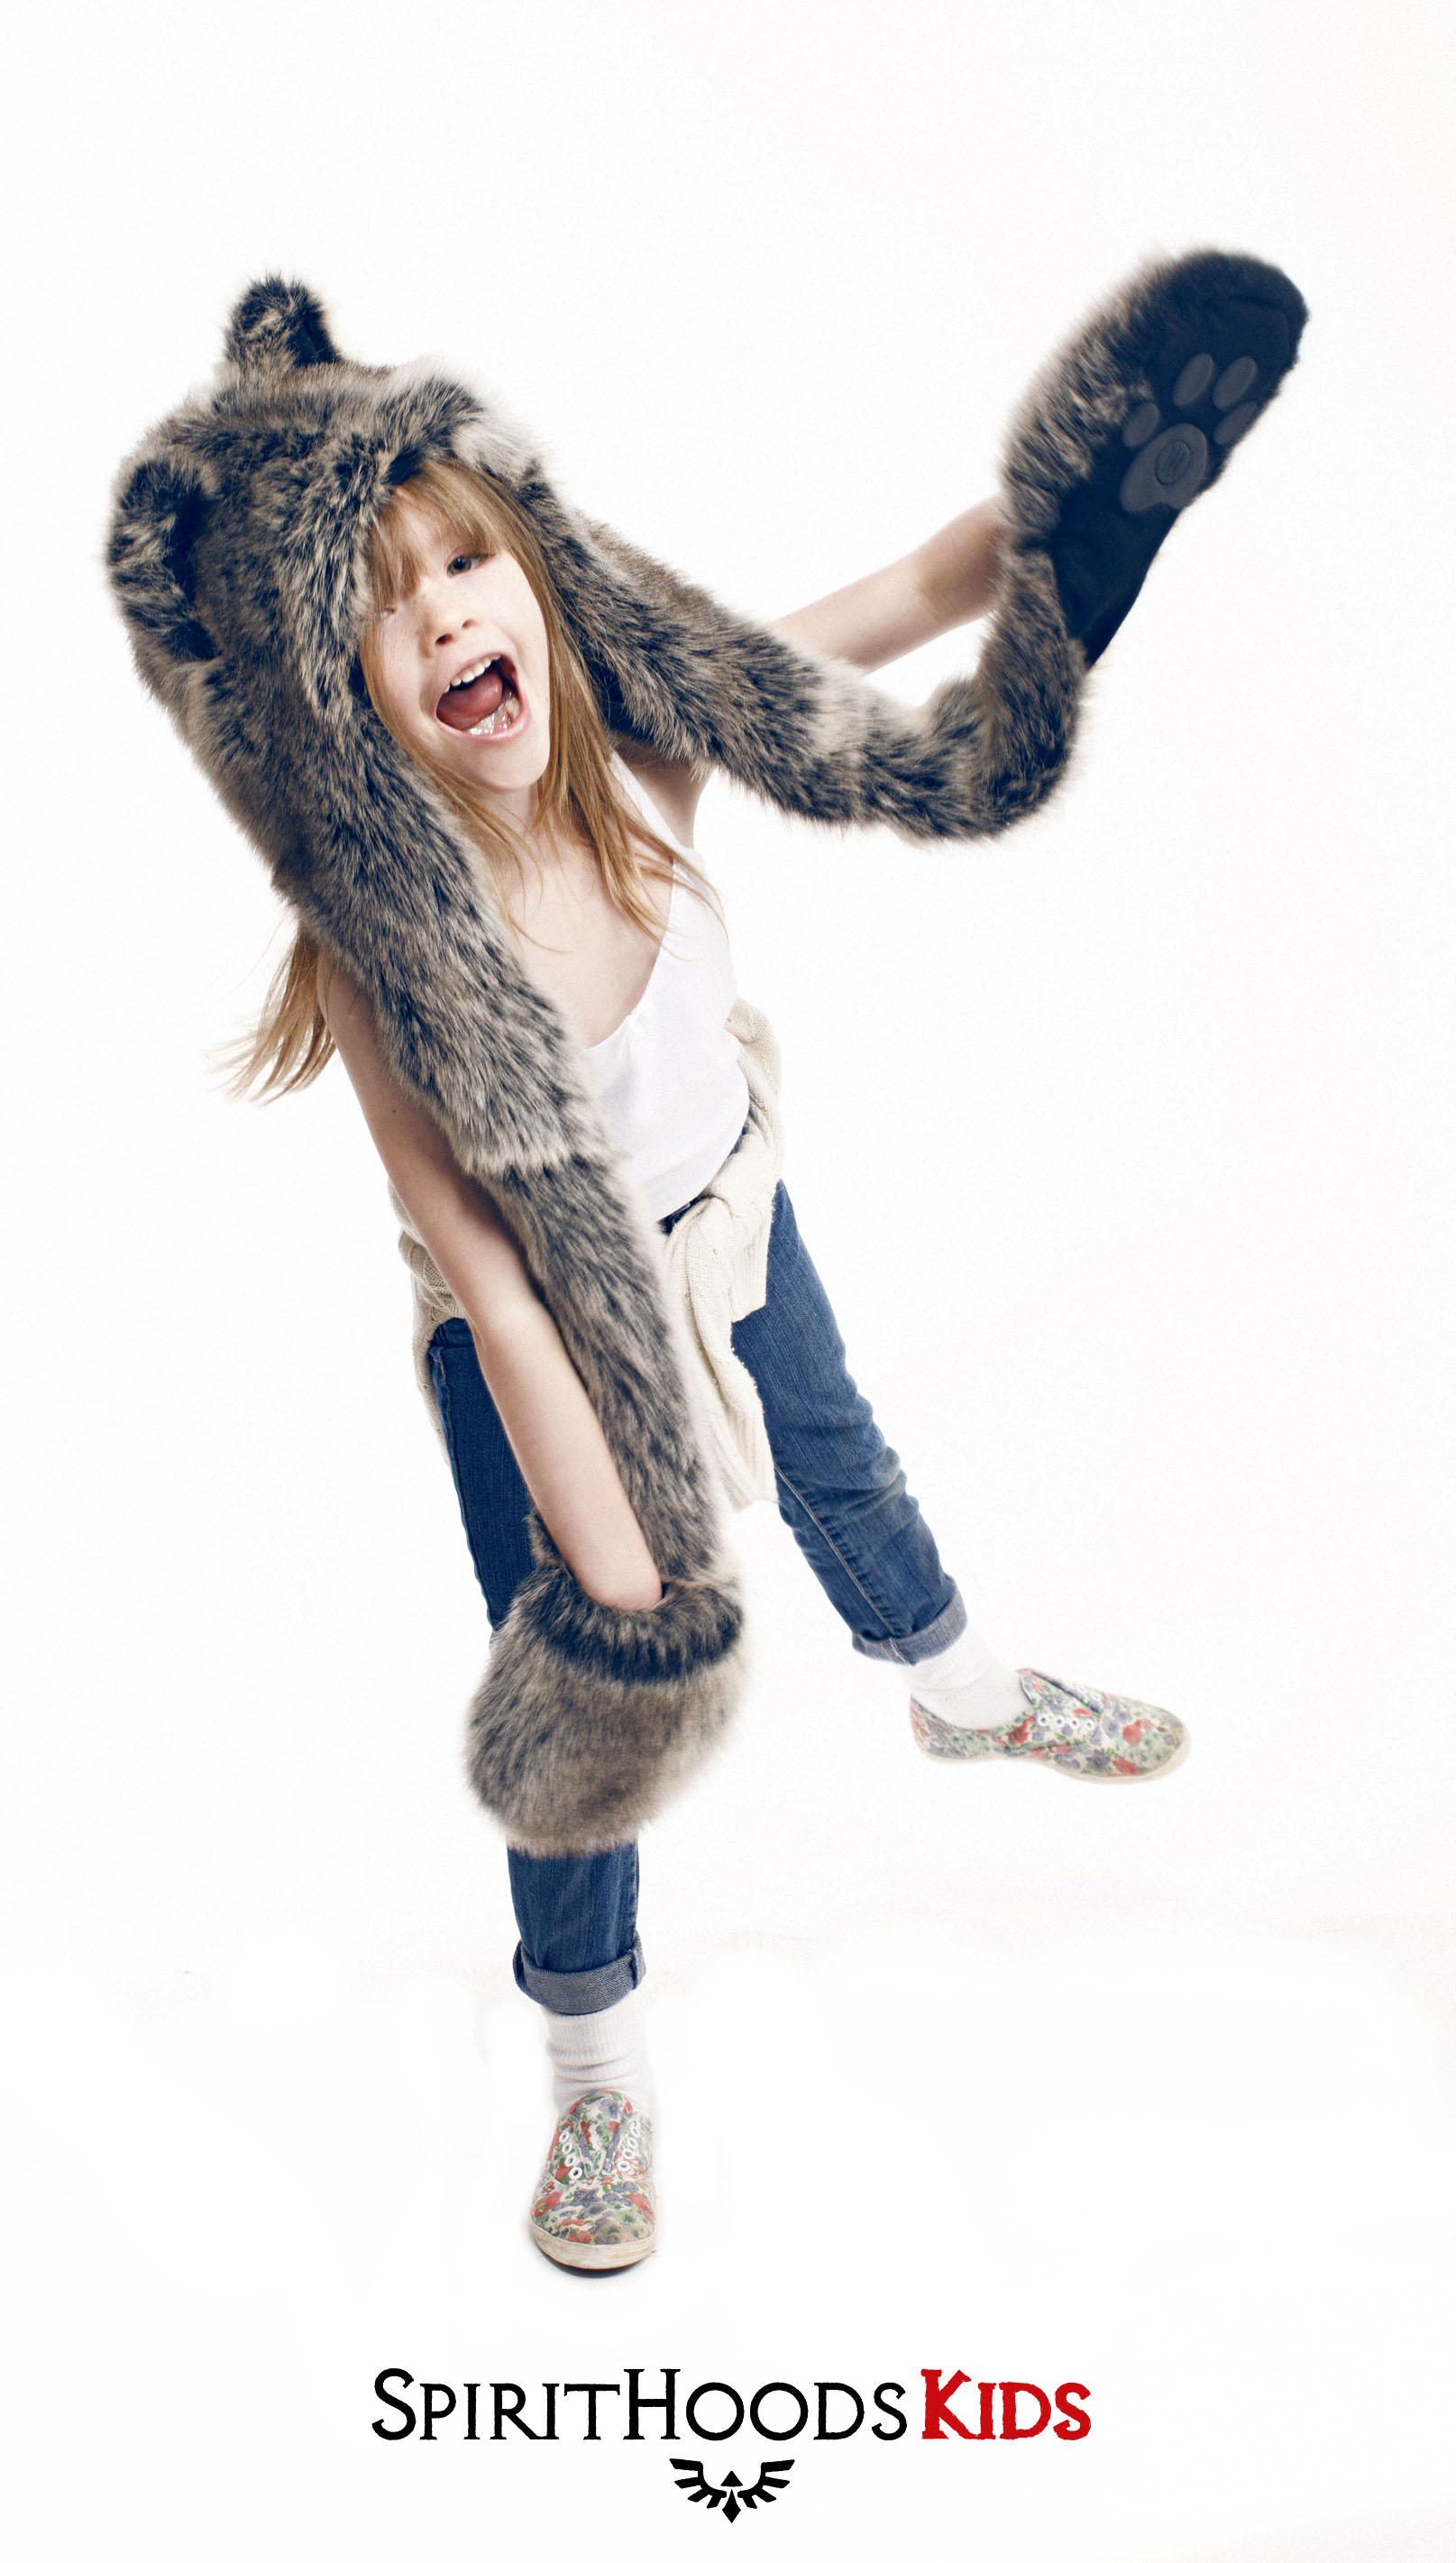 Spirithoods_Kids_Single_08.jpg